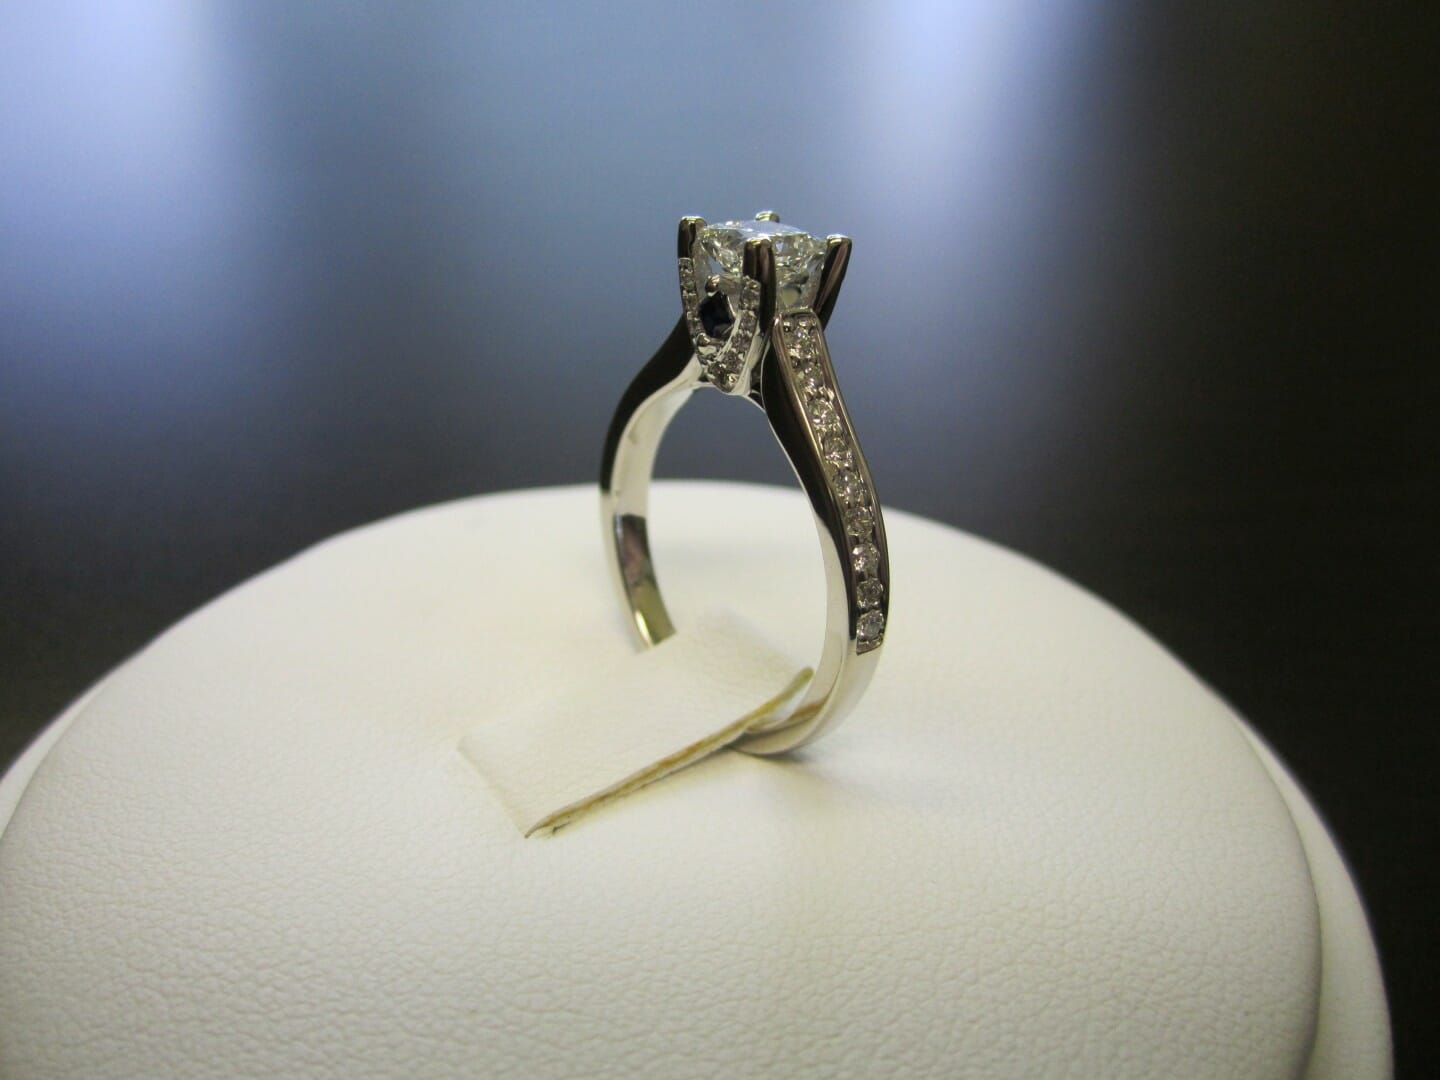 Picture of De Beers steps up hunt for fake diamonds with new detector